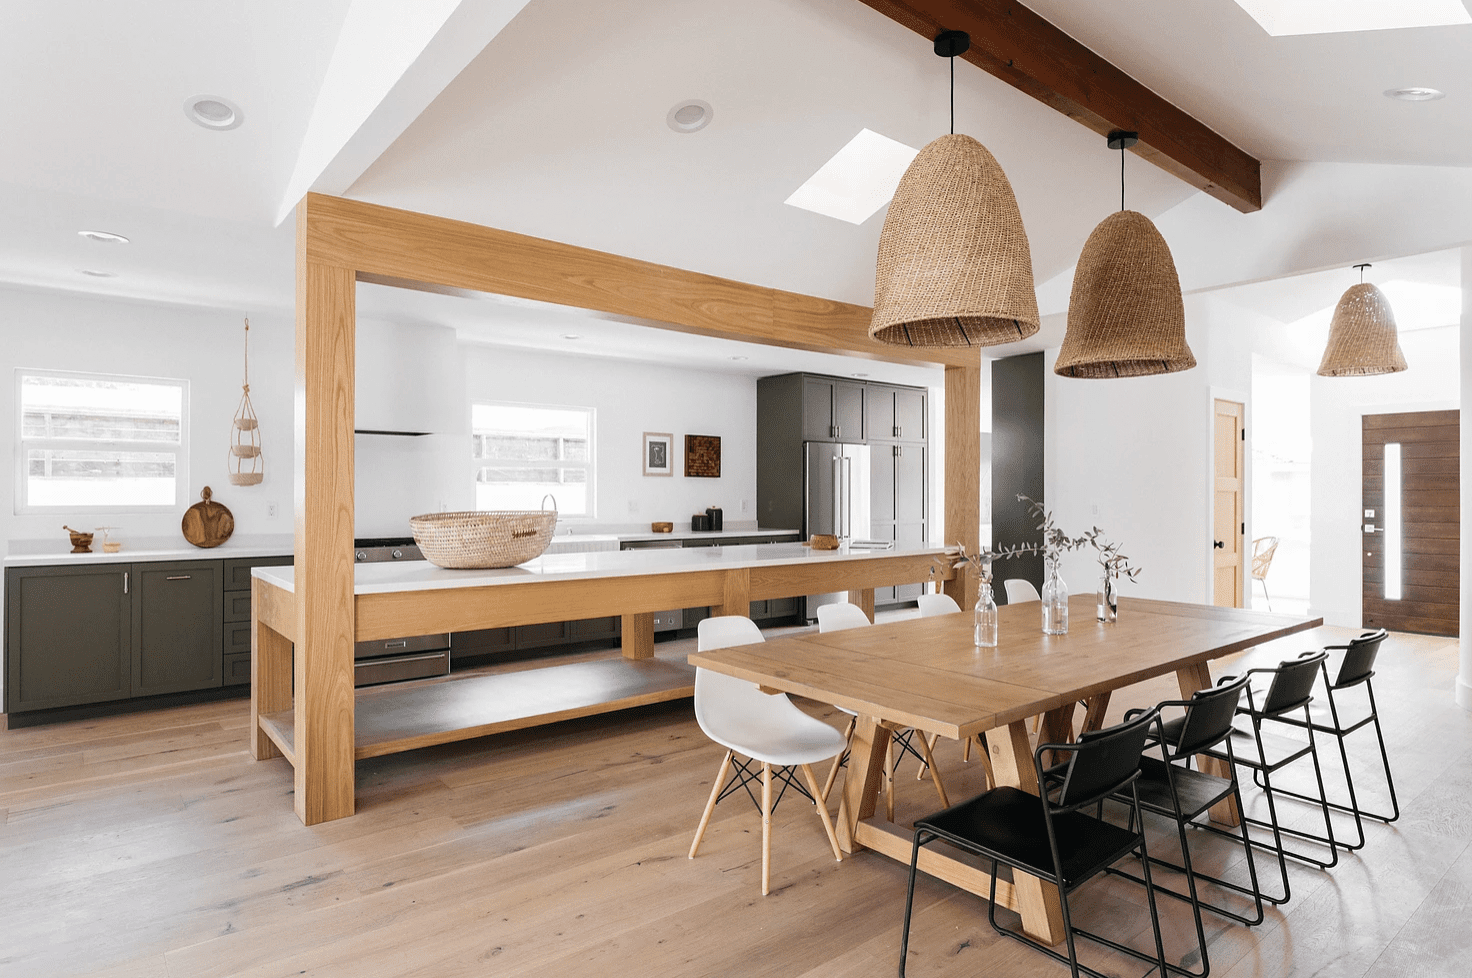 An open-concept kitchen with wood and rattan accents